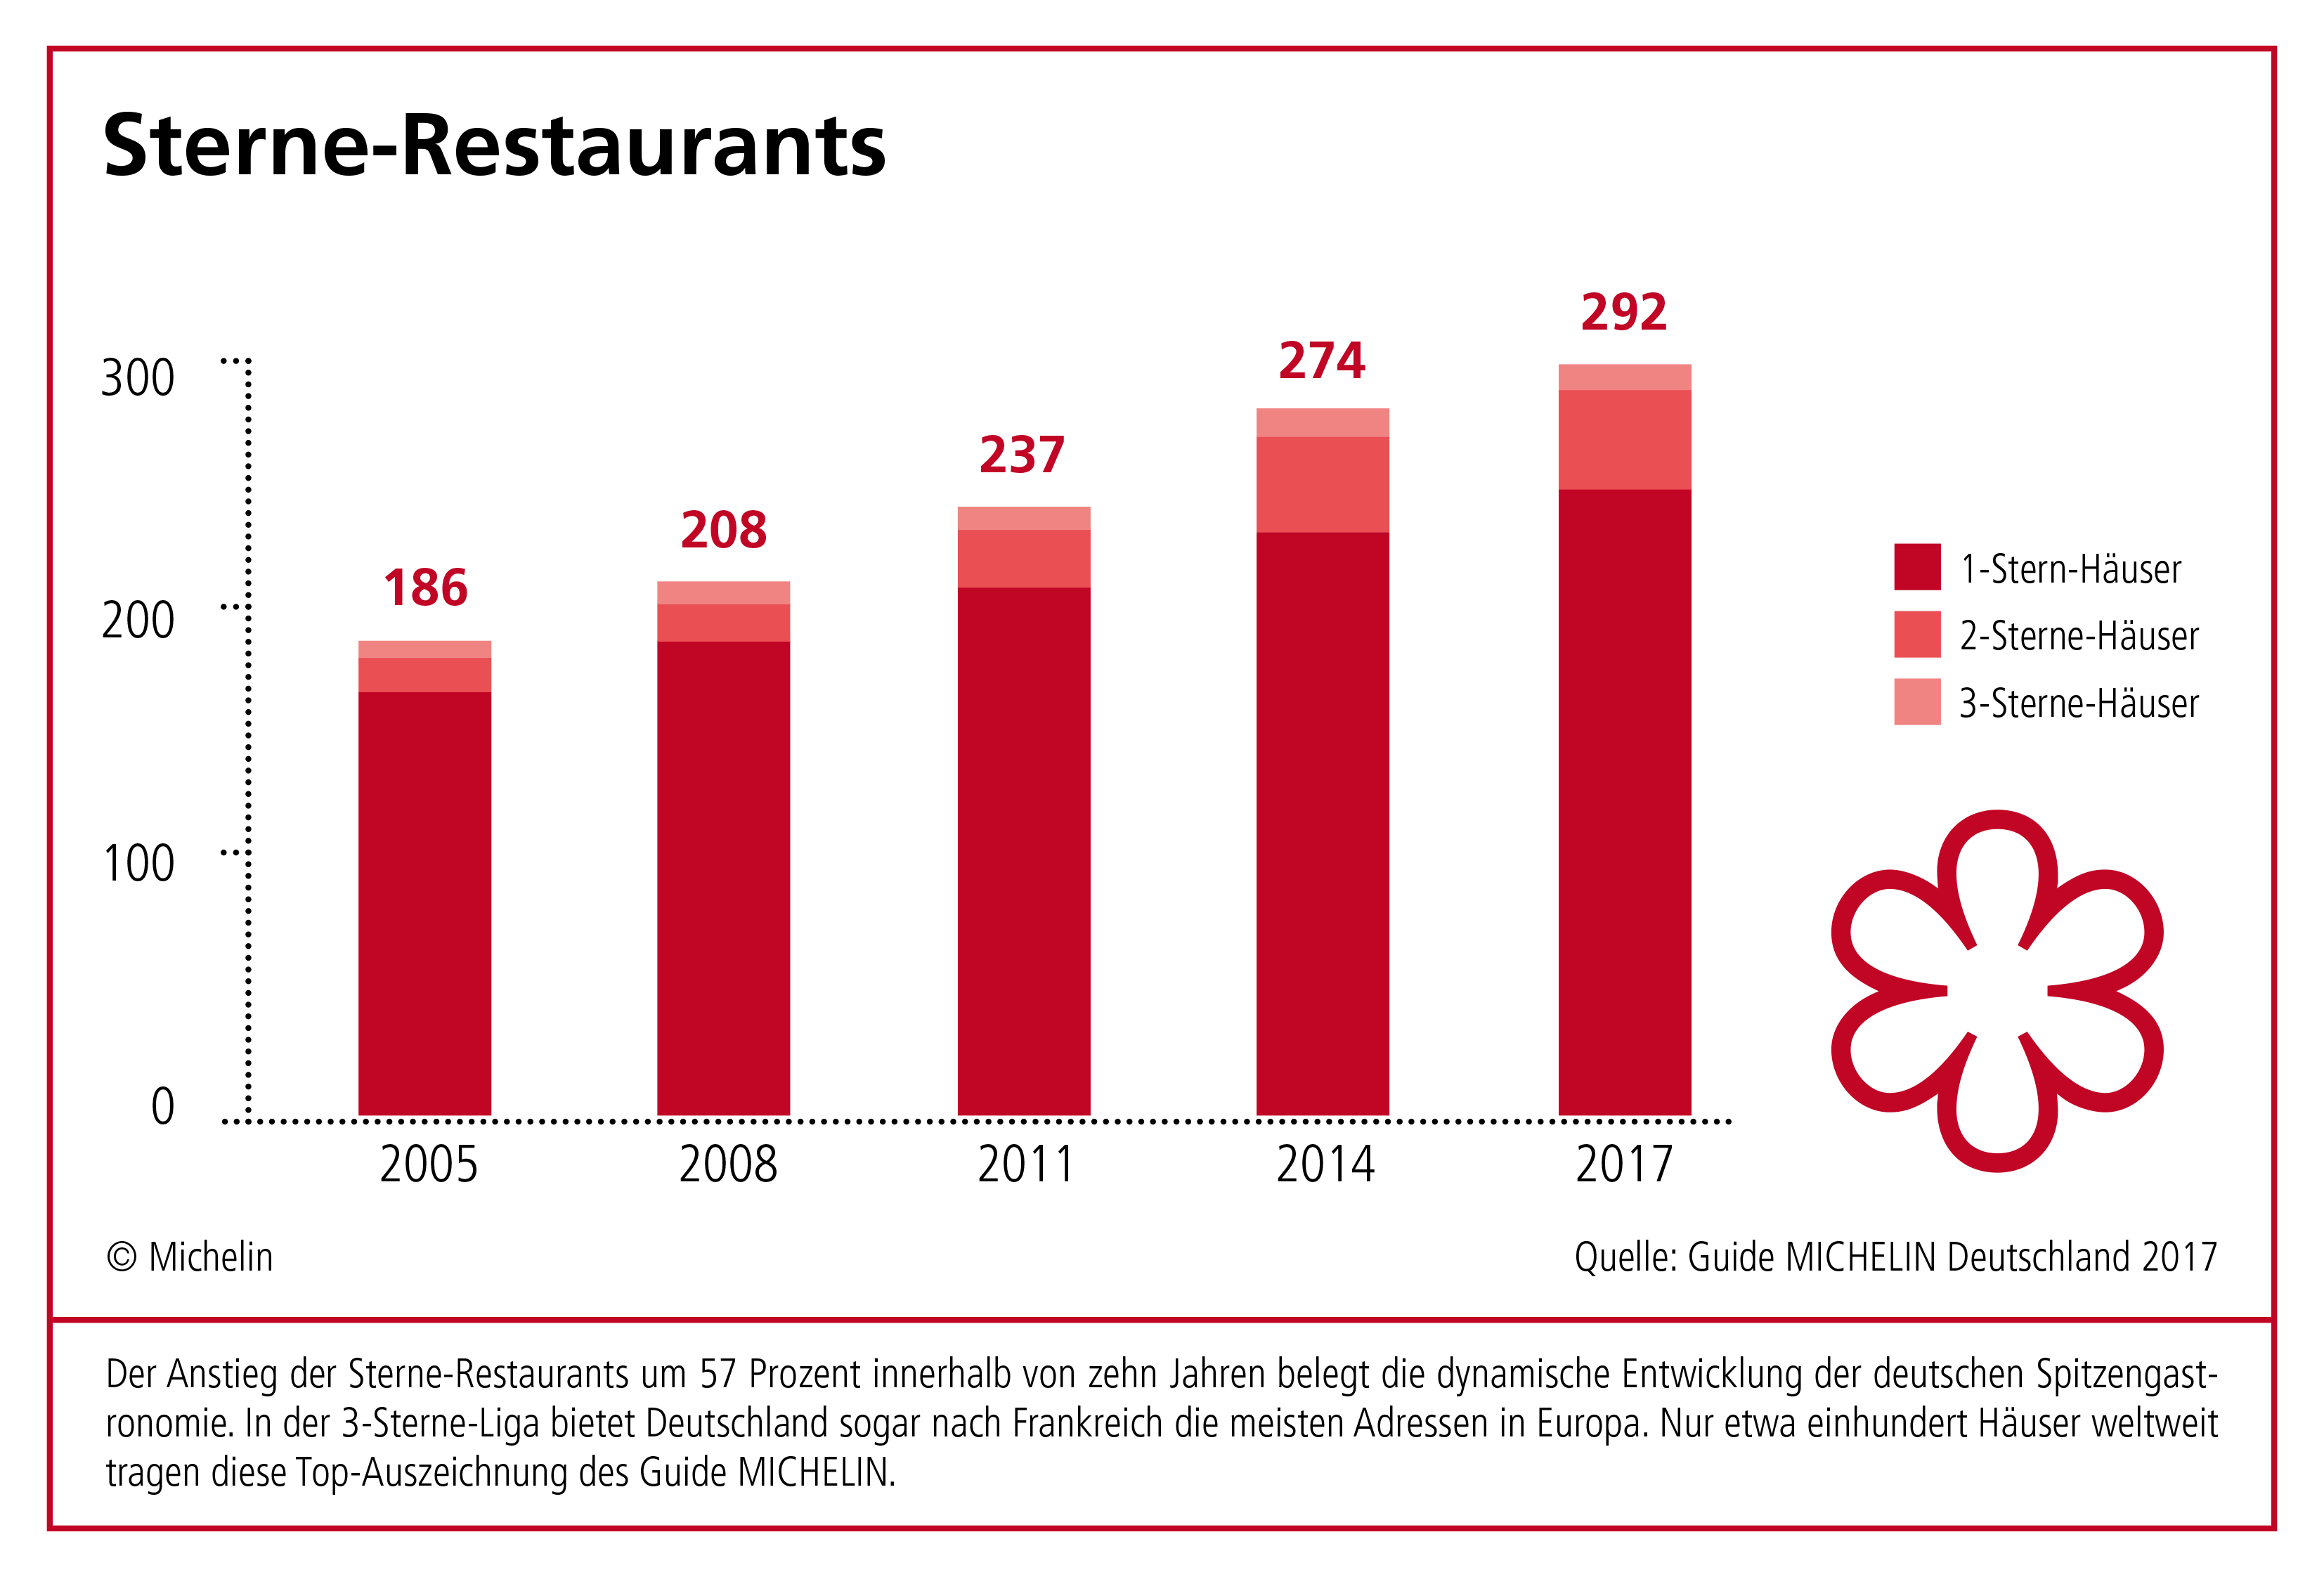 Guide Michelin Sterne Restaurants 2017